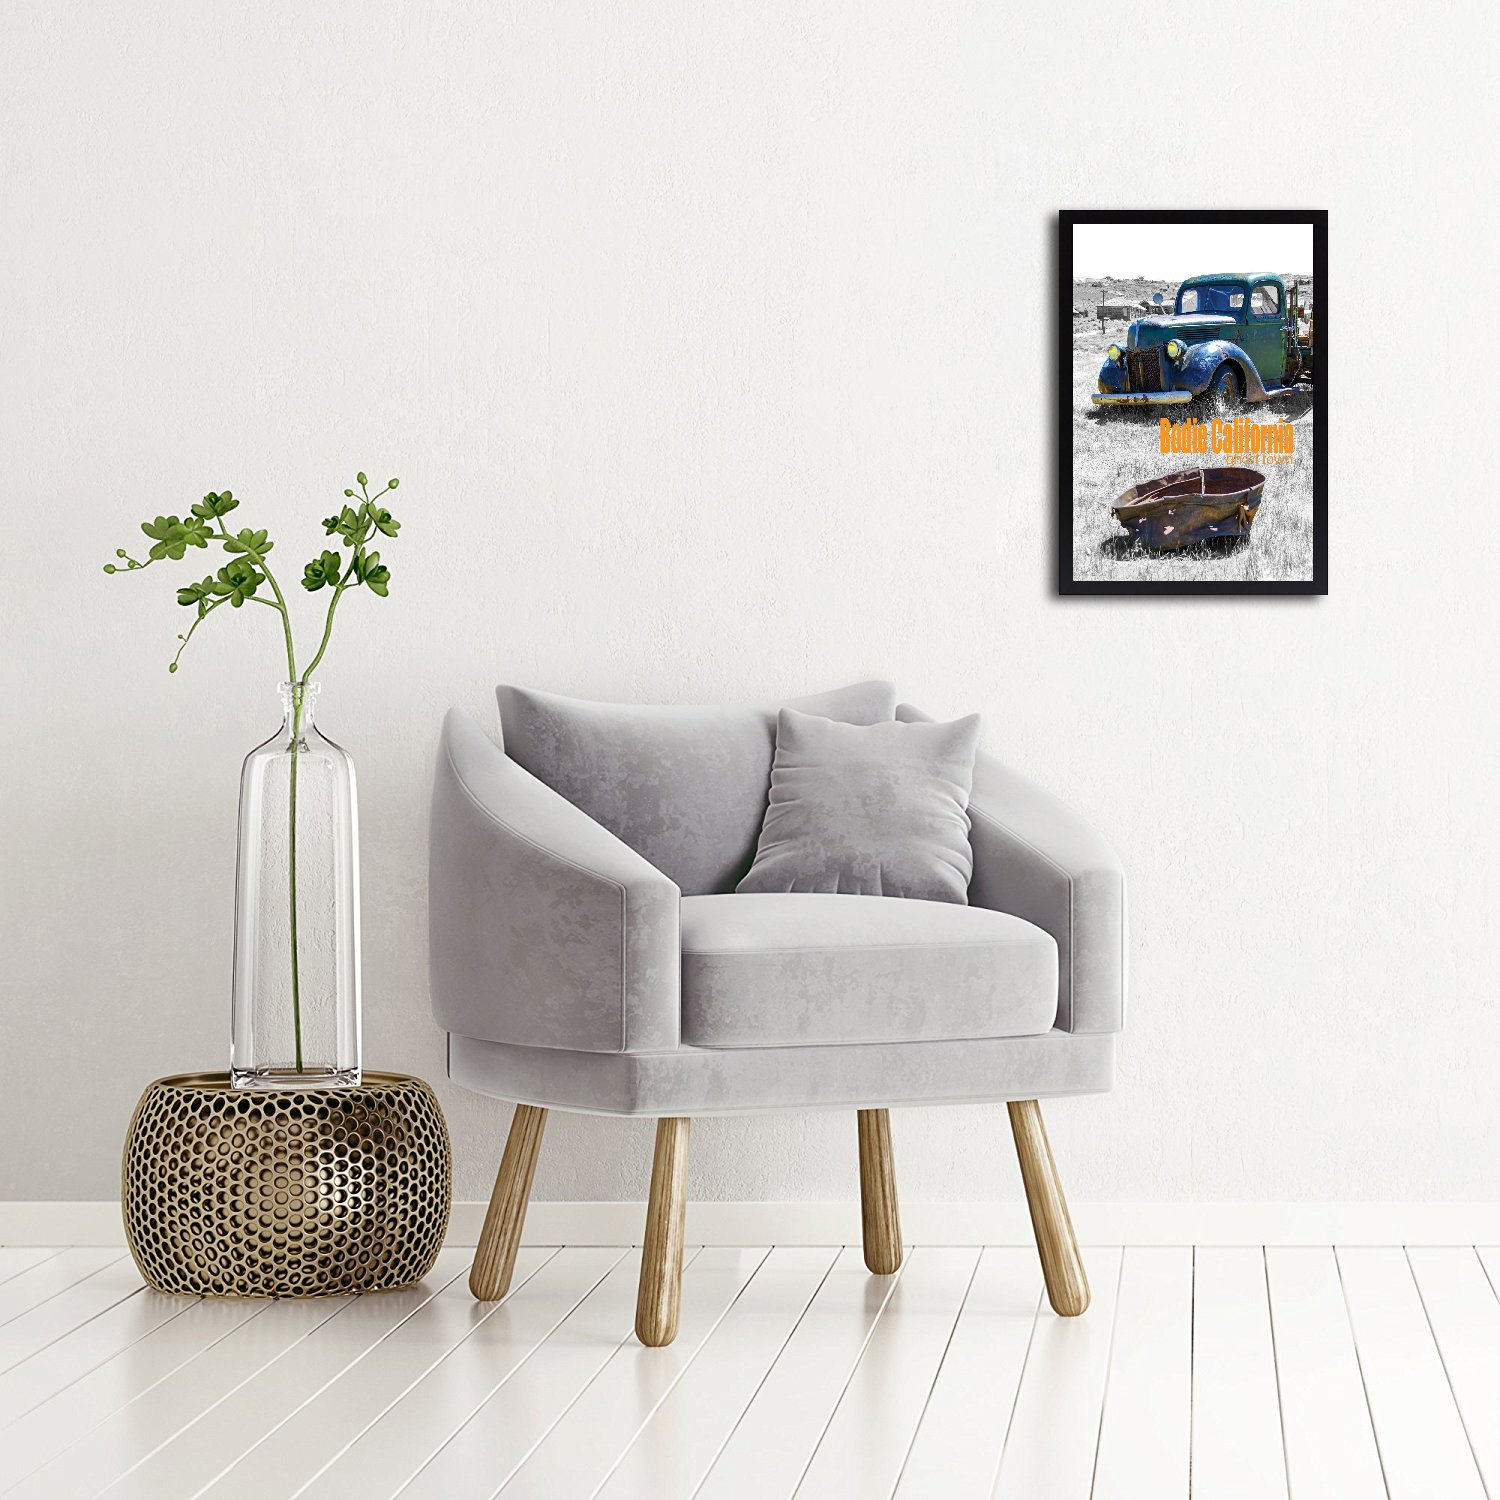 Simple and Stylish Black Swivel Tabs 11x14 Inch Poster Frame Golden State Art Landscape//Portrait